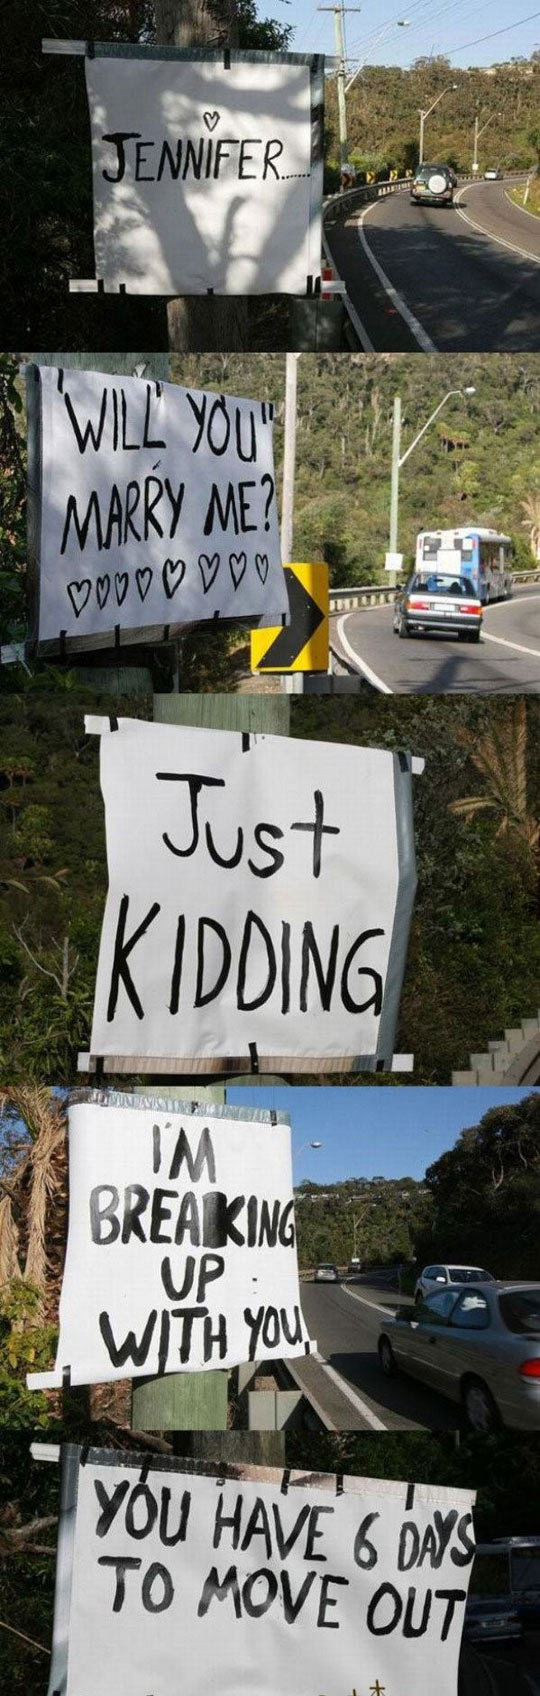 funny-Jennifer-sign-street-marry